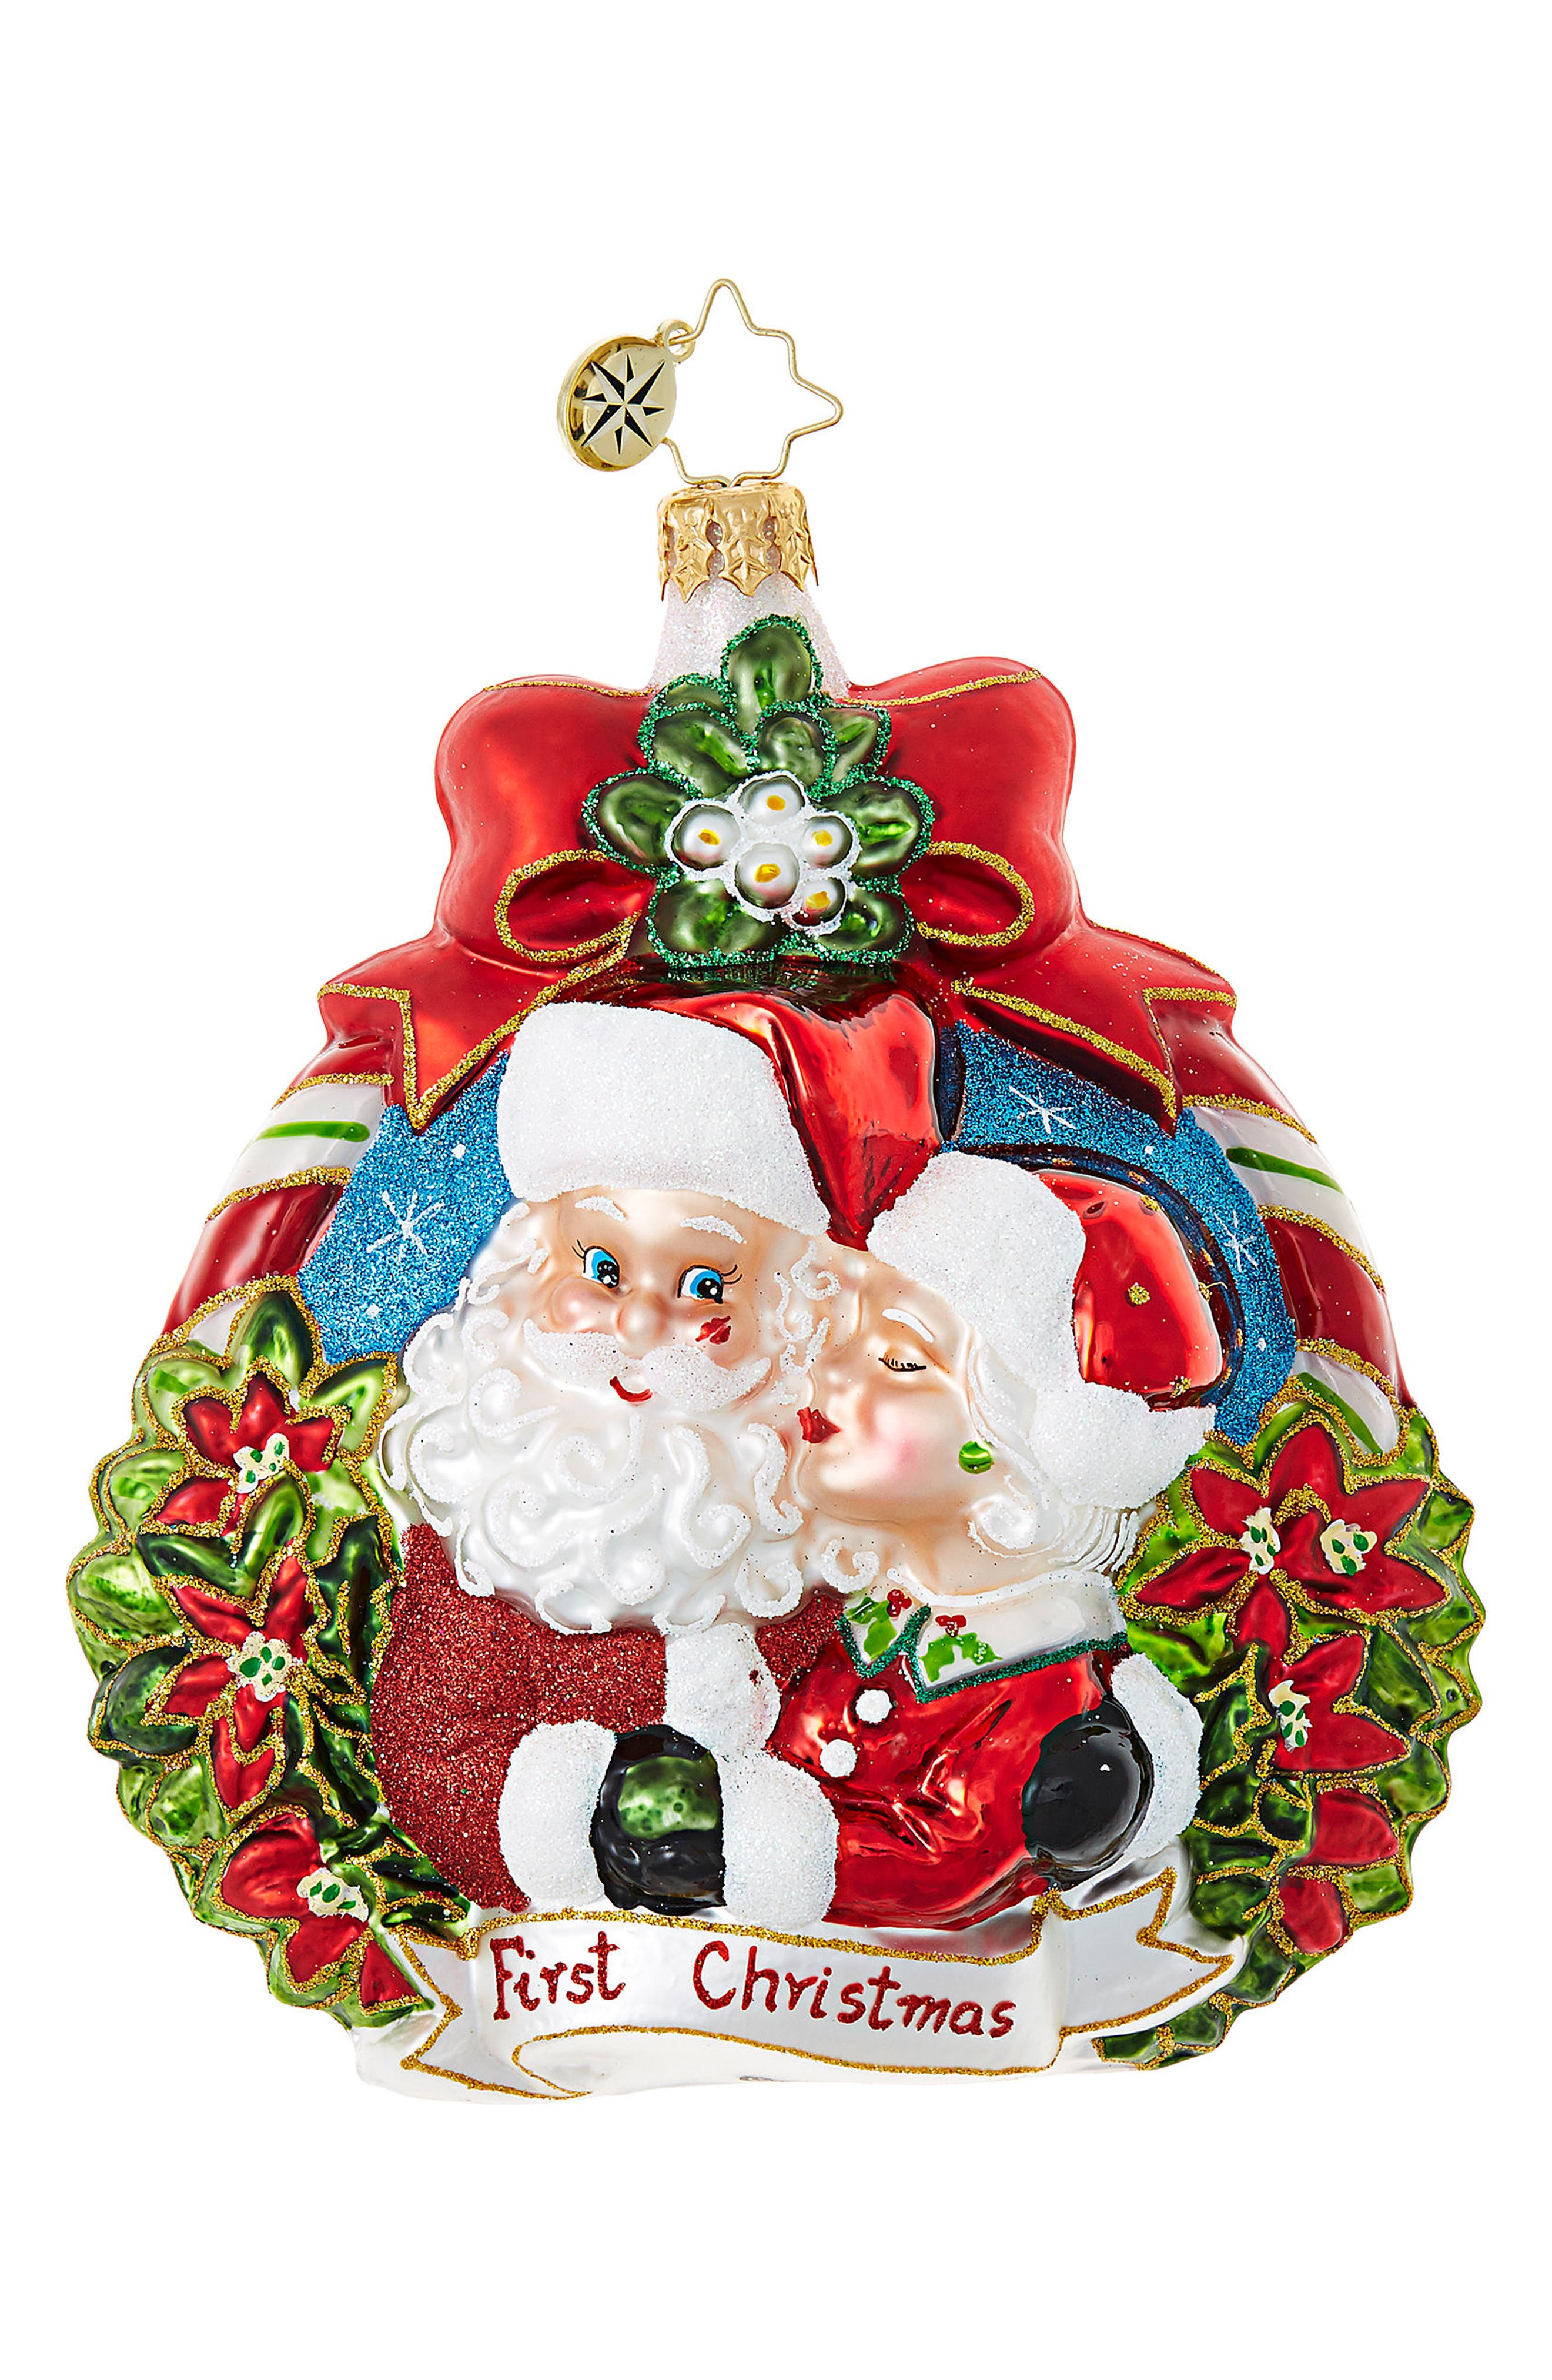 First Christmas Glass Ornament,                             Main thumbnail 1, color,                             600